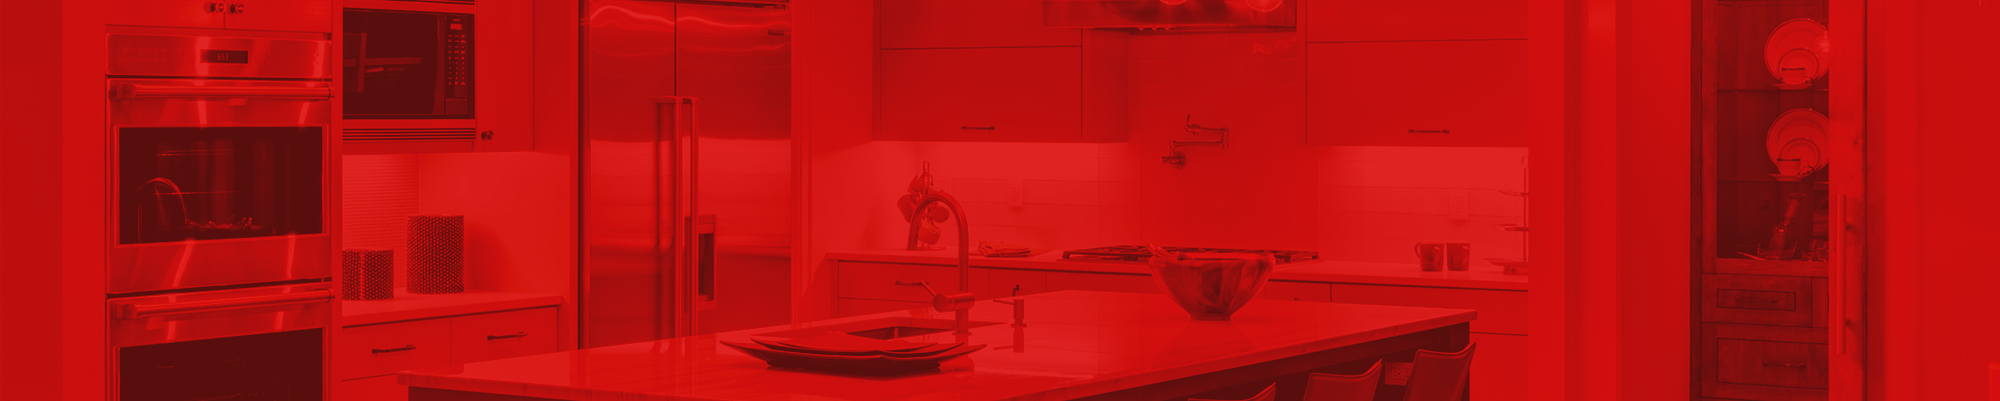 Kitchen view with red color overlay